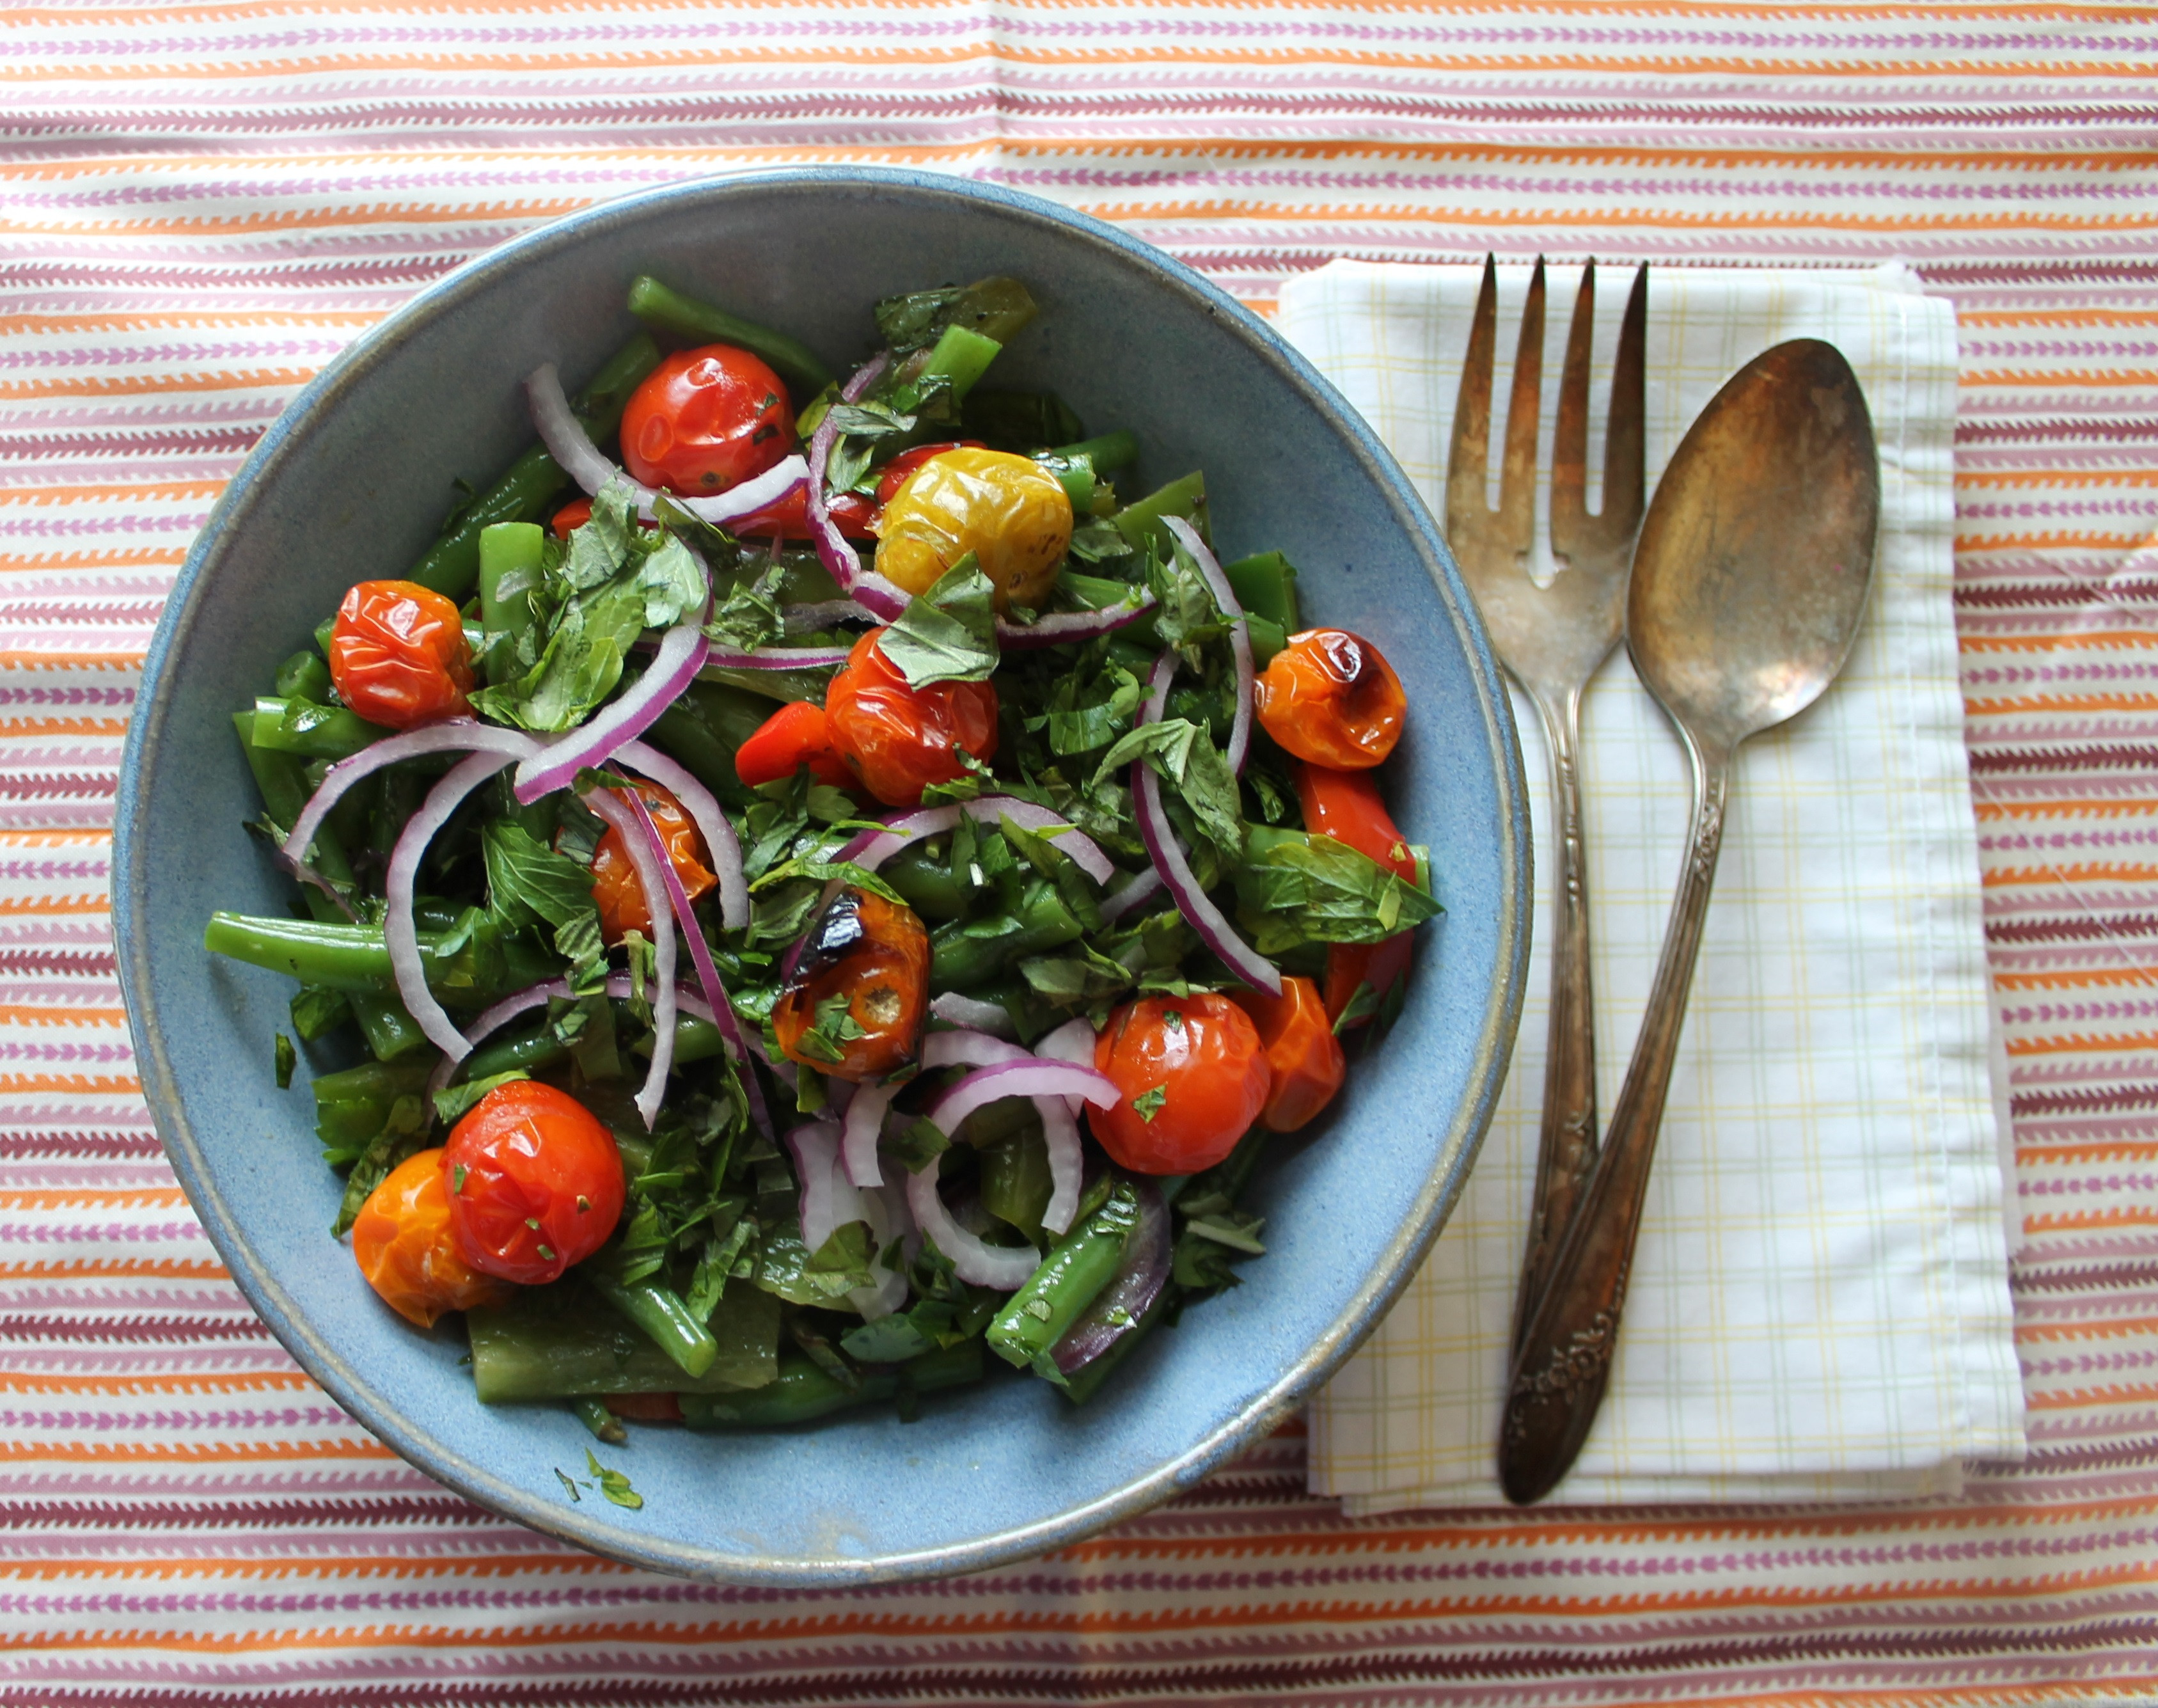 Warm salad of green beans and cherry